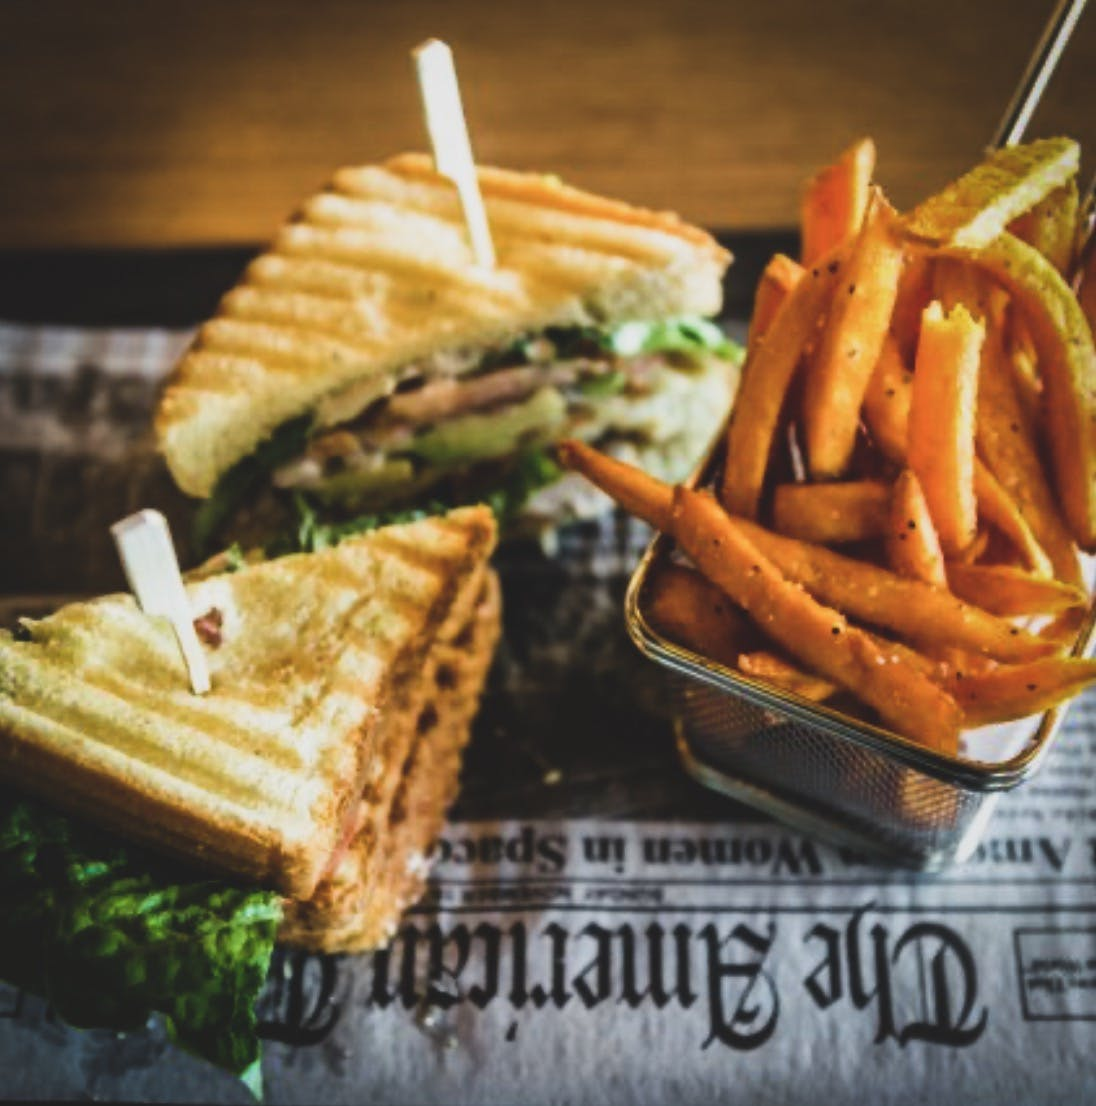 a sandwich and fries on a plate